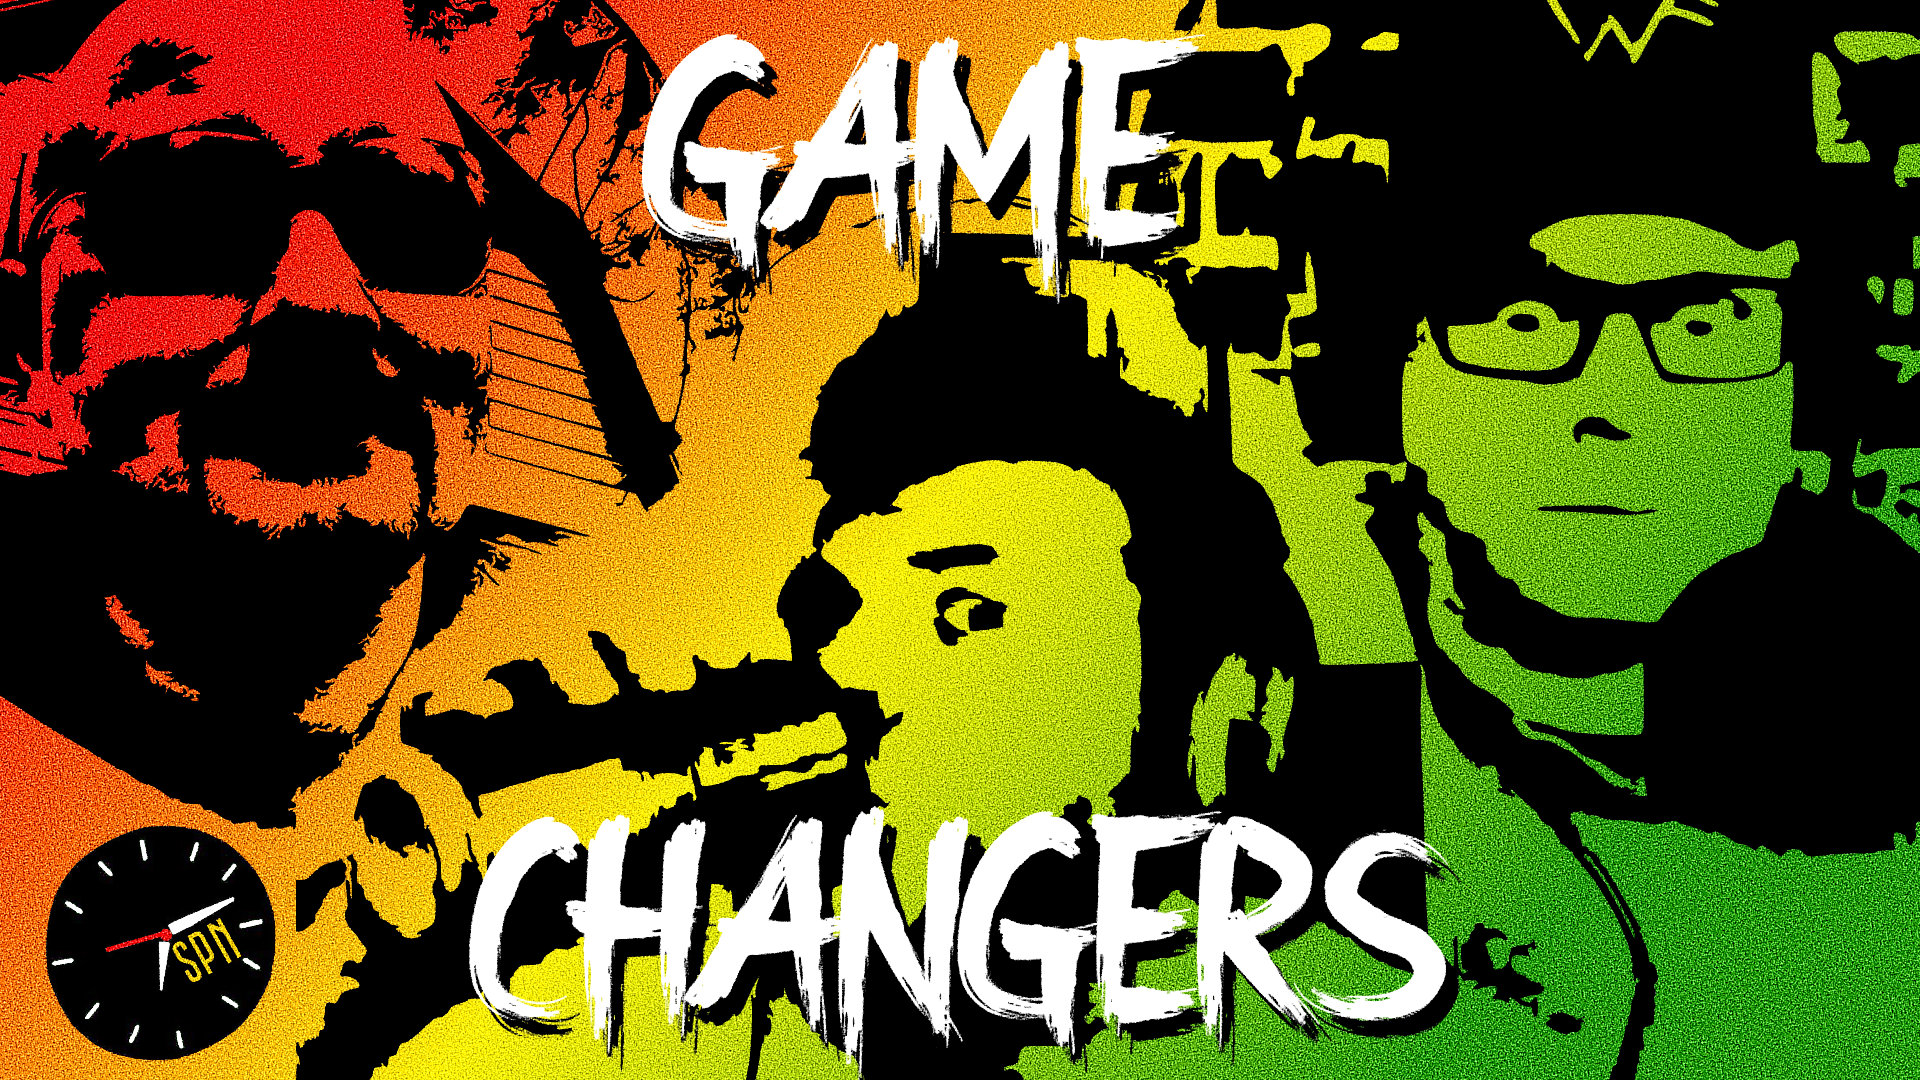 From Game Changers to Gaming Changers